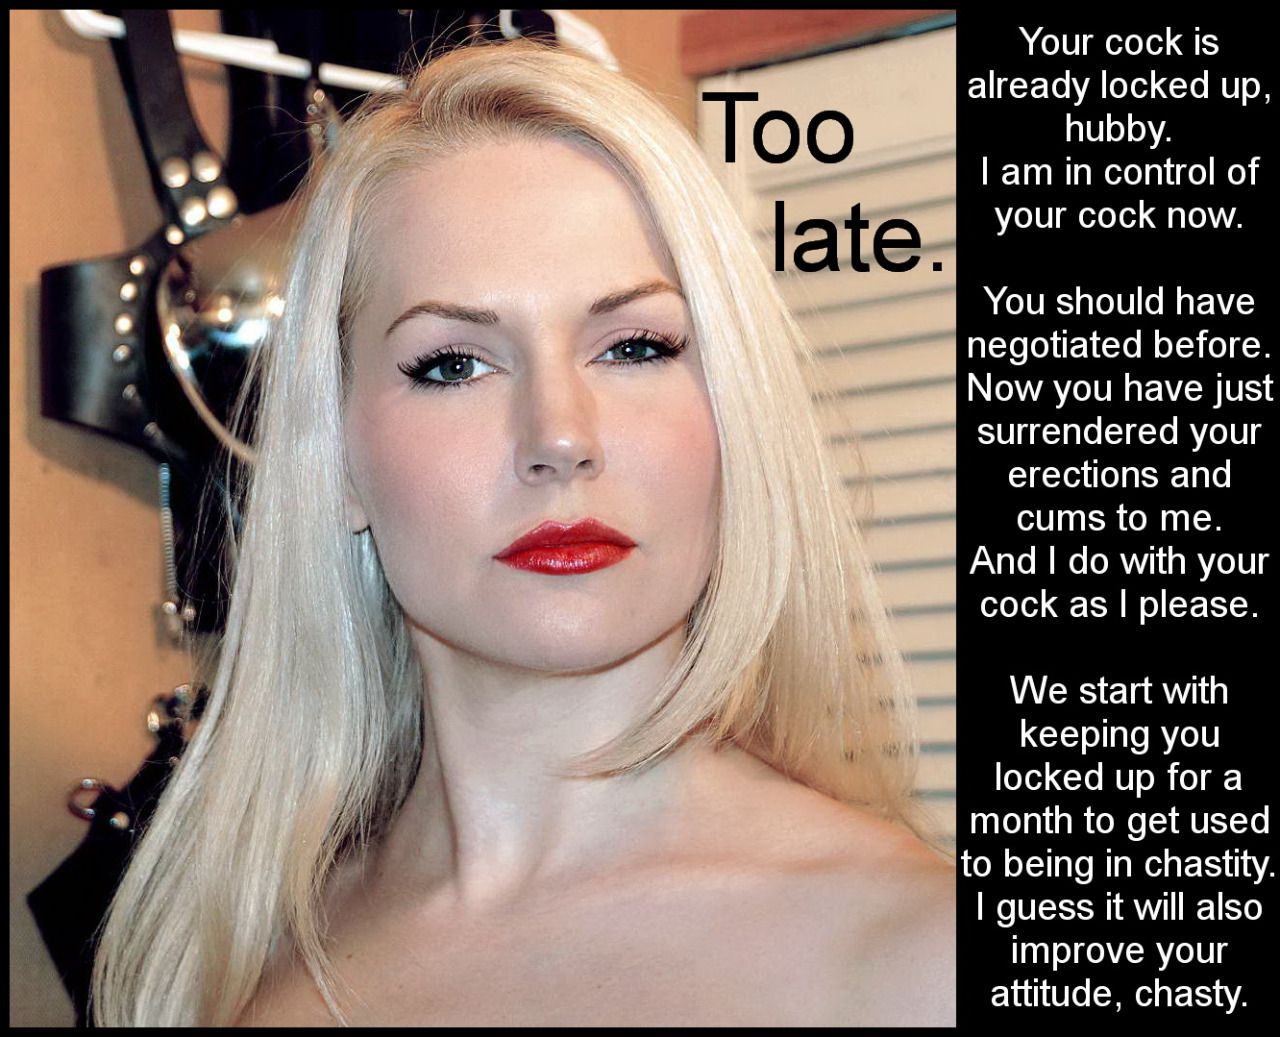 Chastity rules